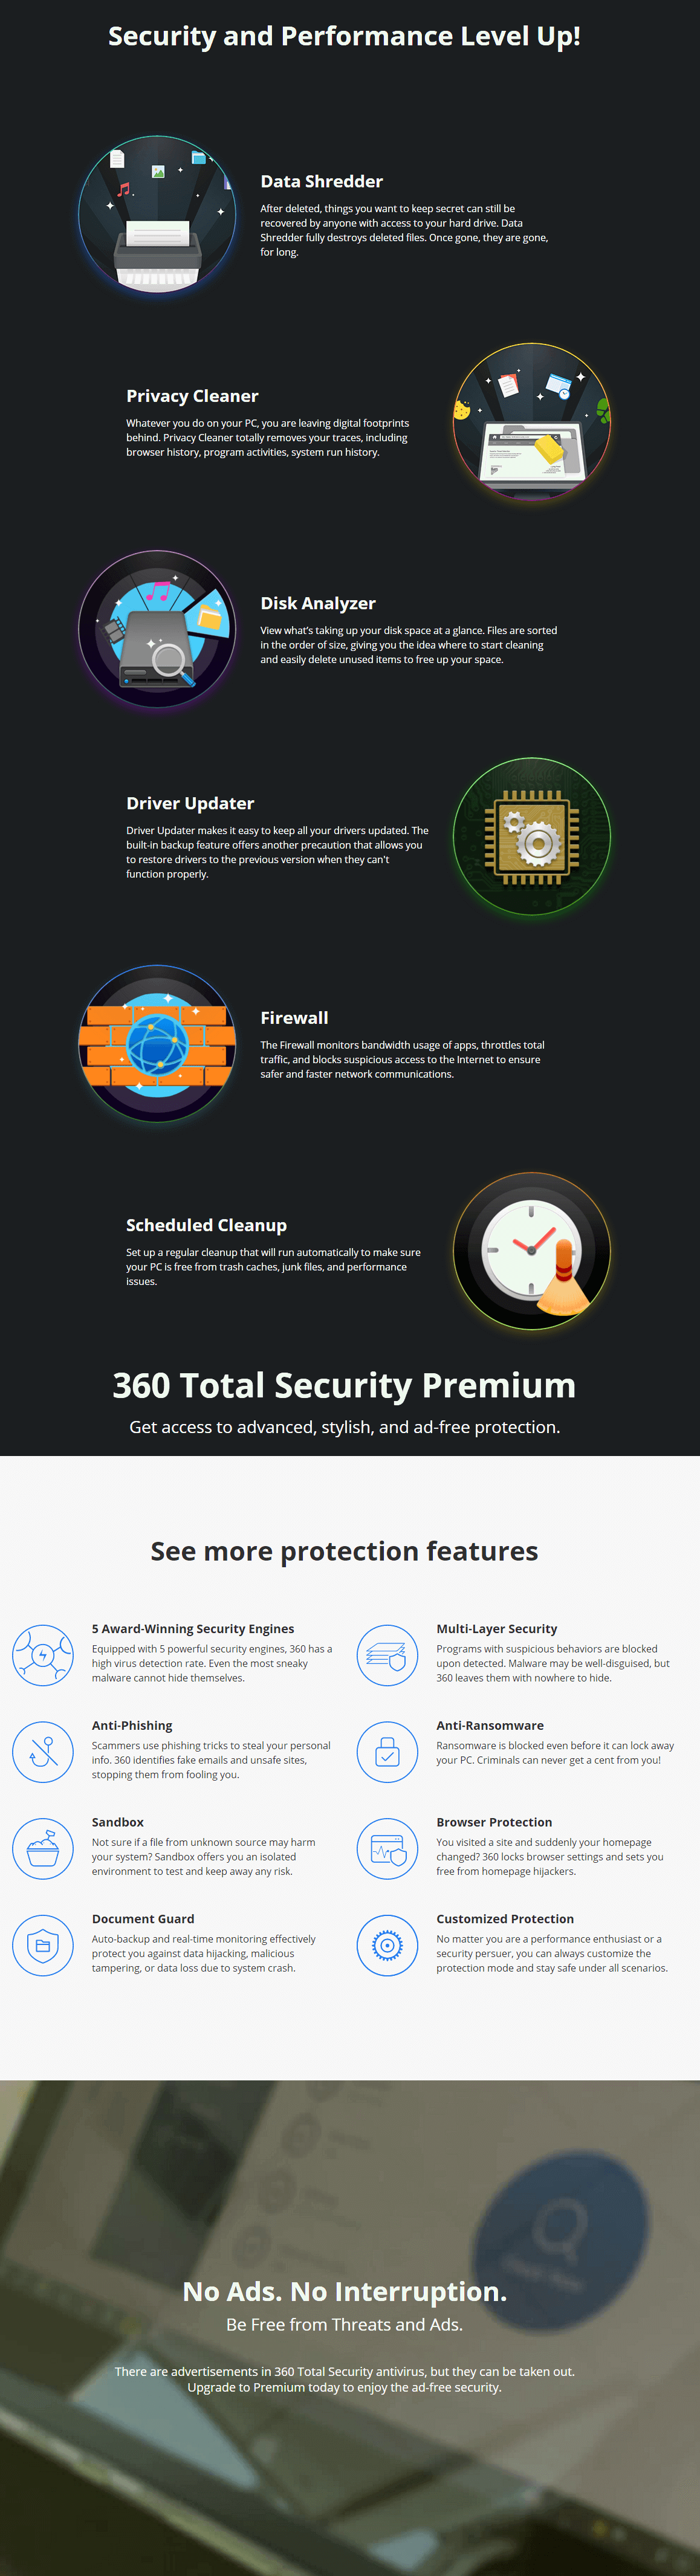 360 Total Security Premium Feature